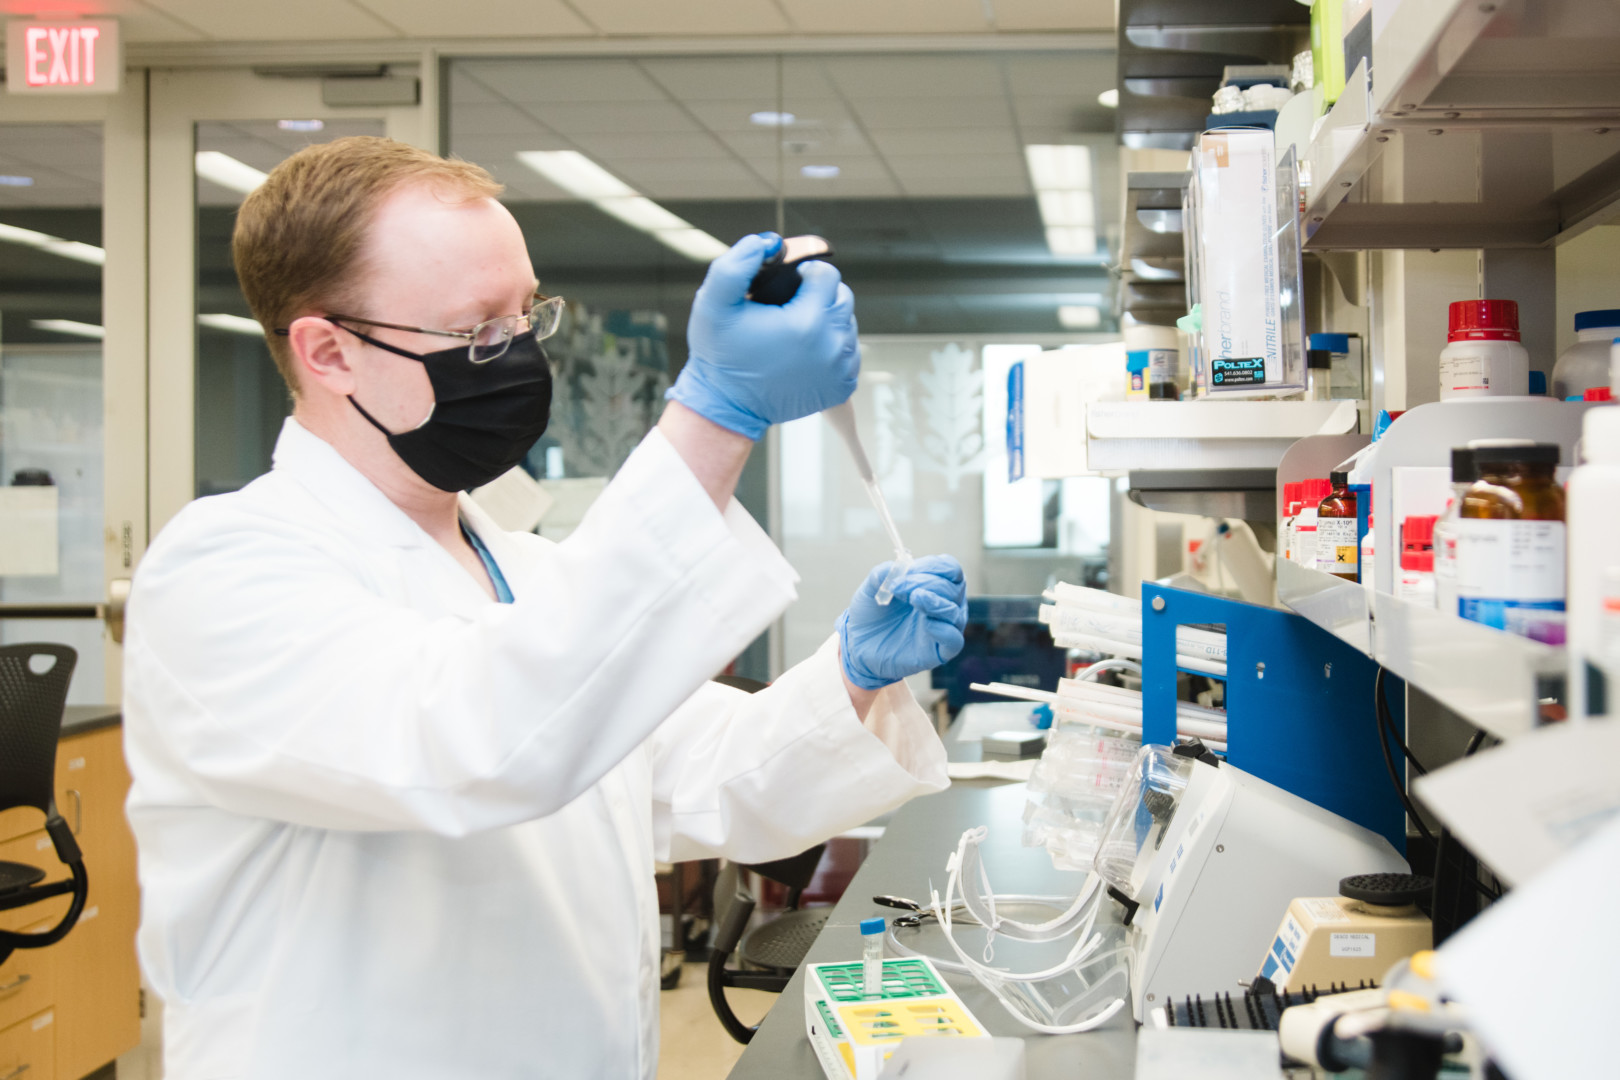 Dr. Bookland experimenting in neurosurgery lab